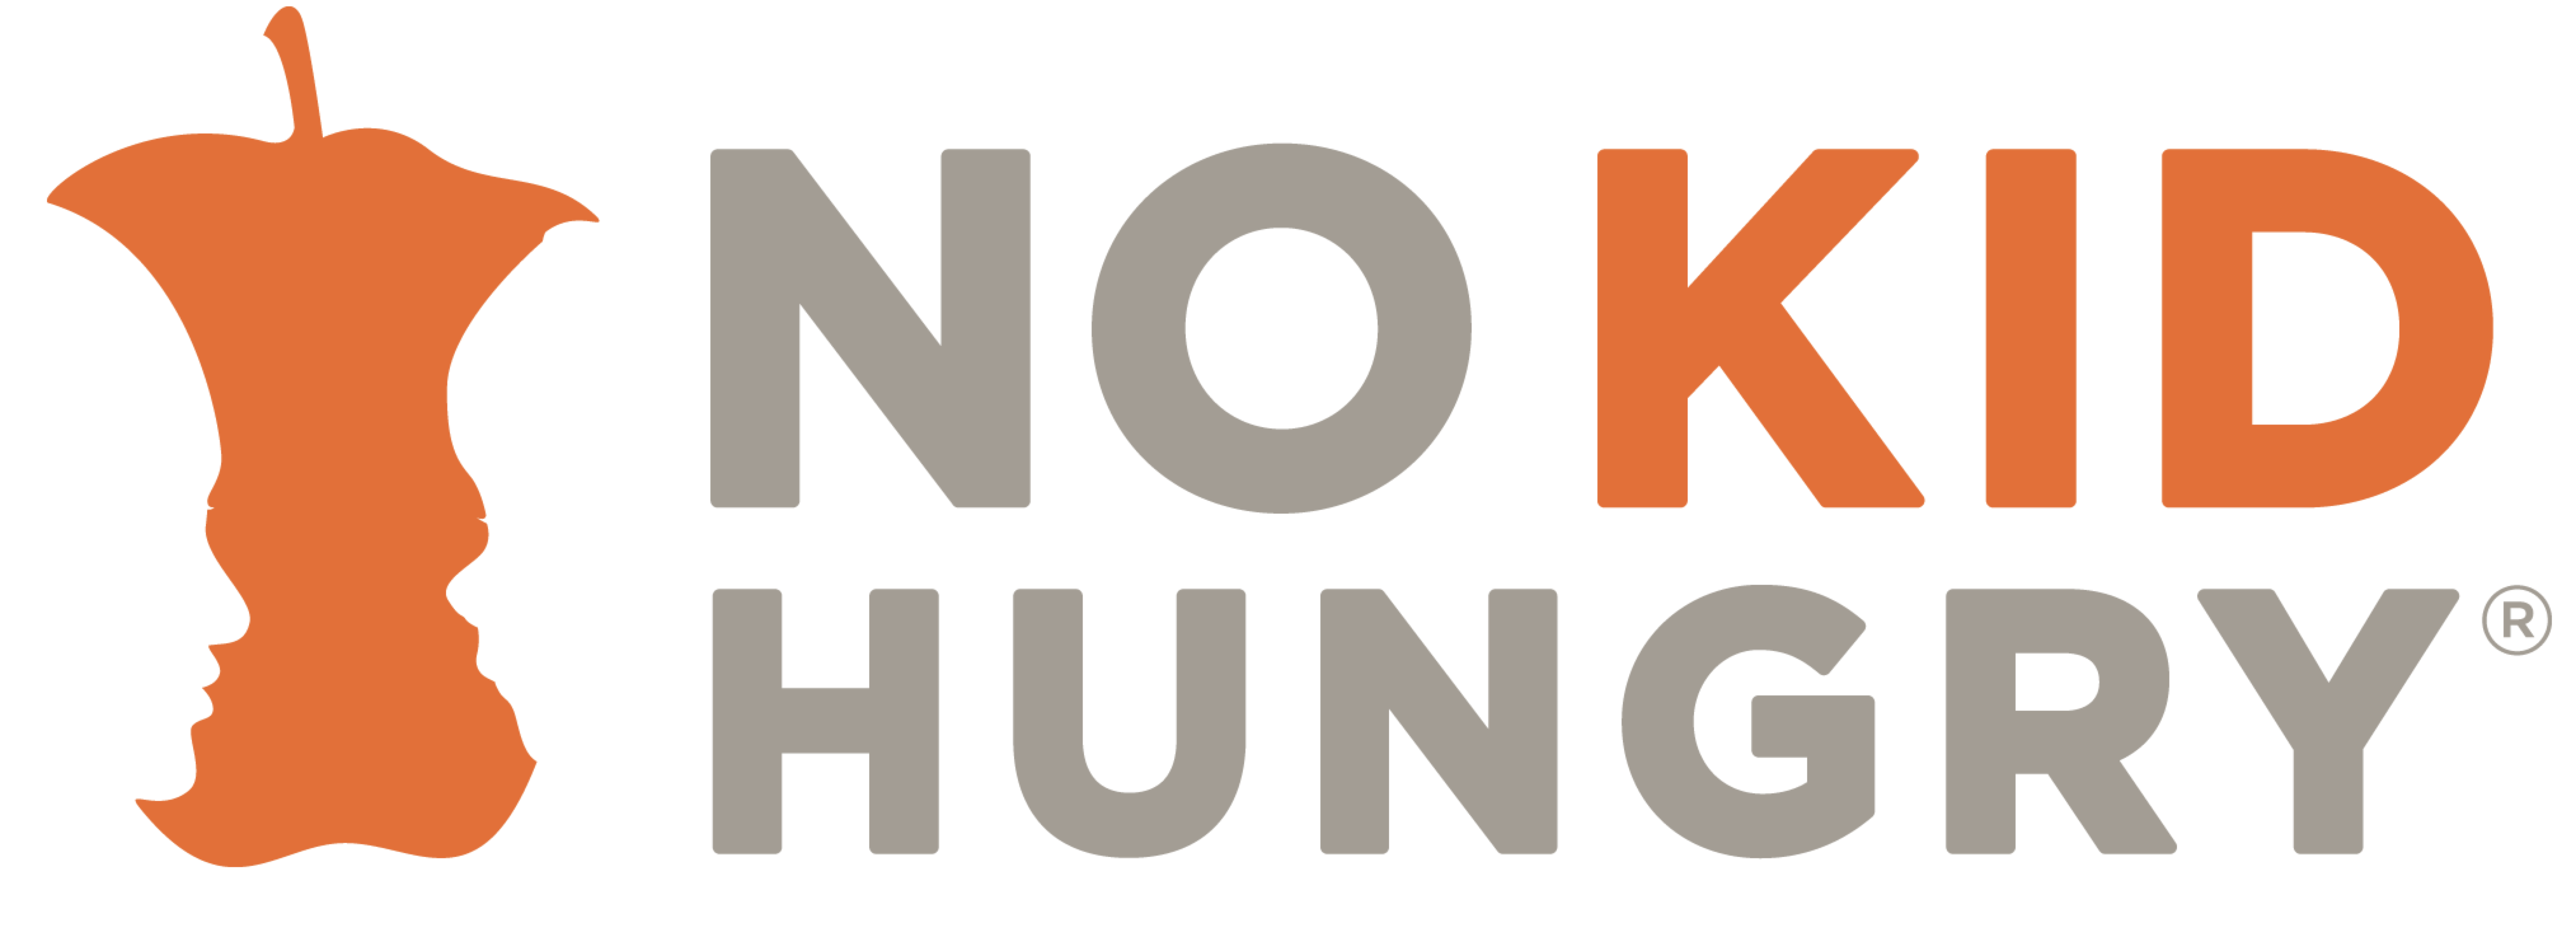 End Child Hunger in America.